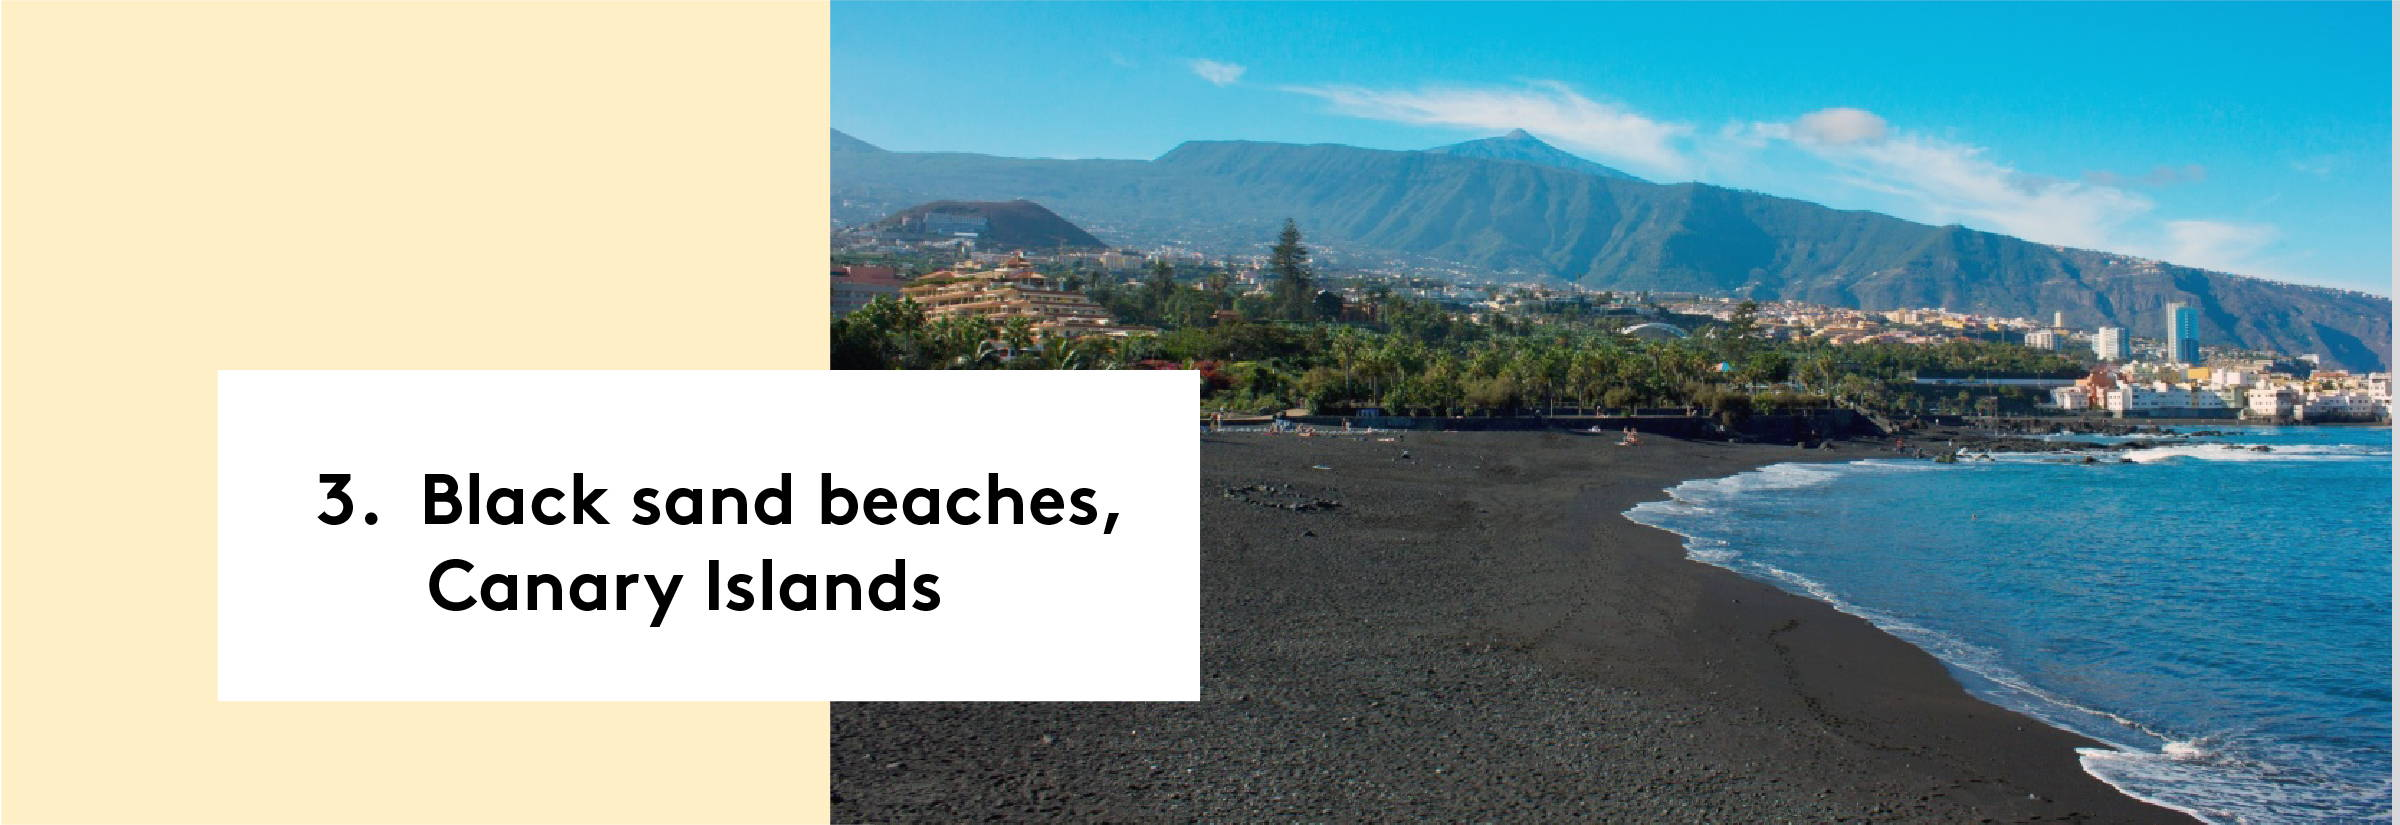 Black sand beaches, Canary Islands